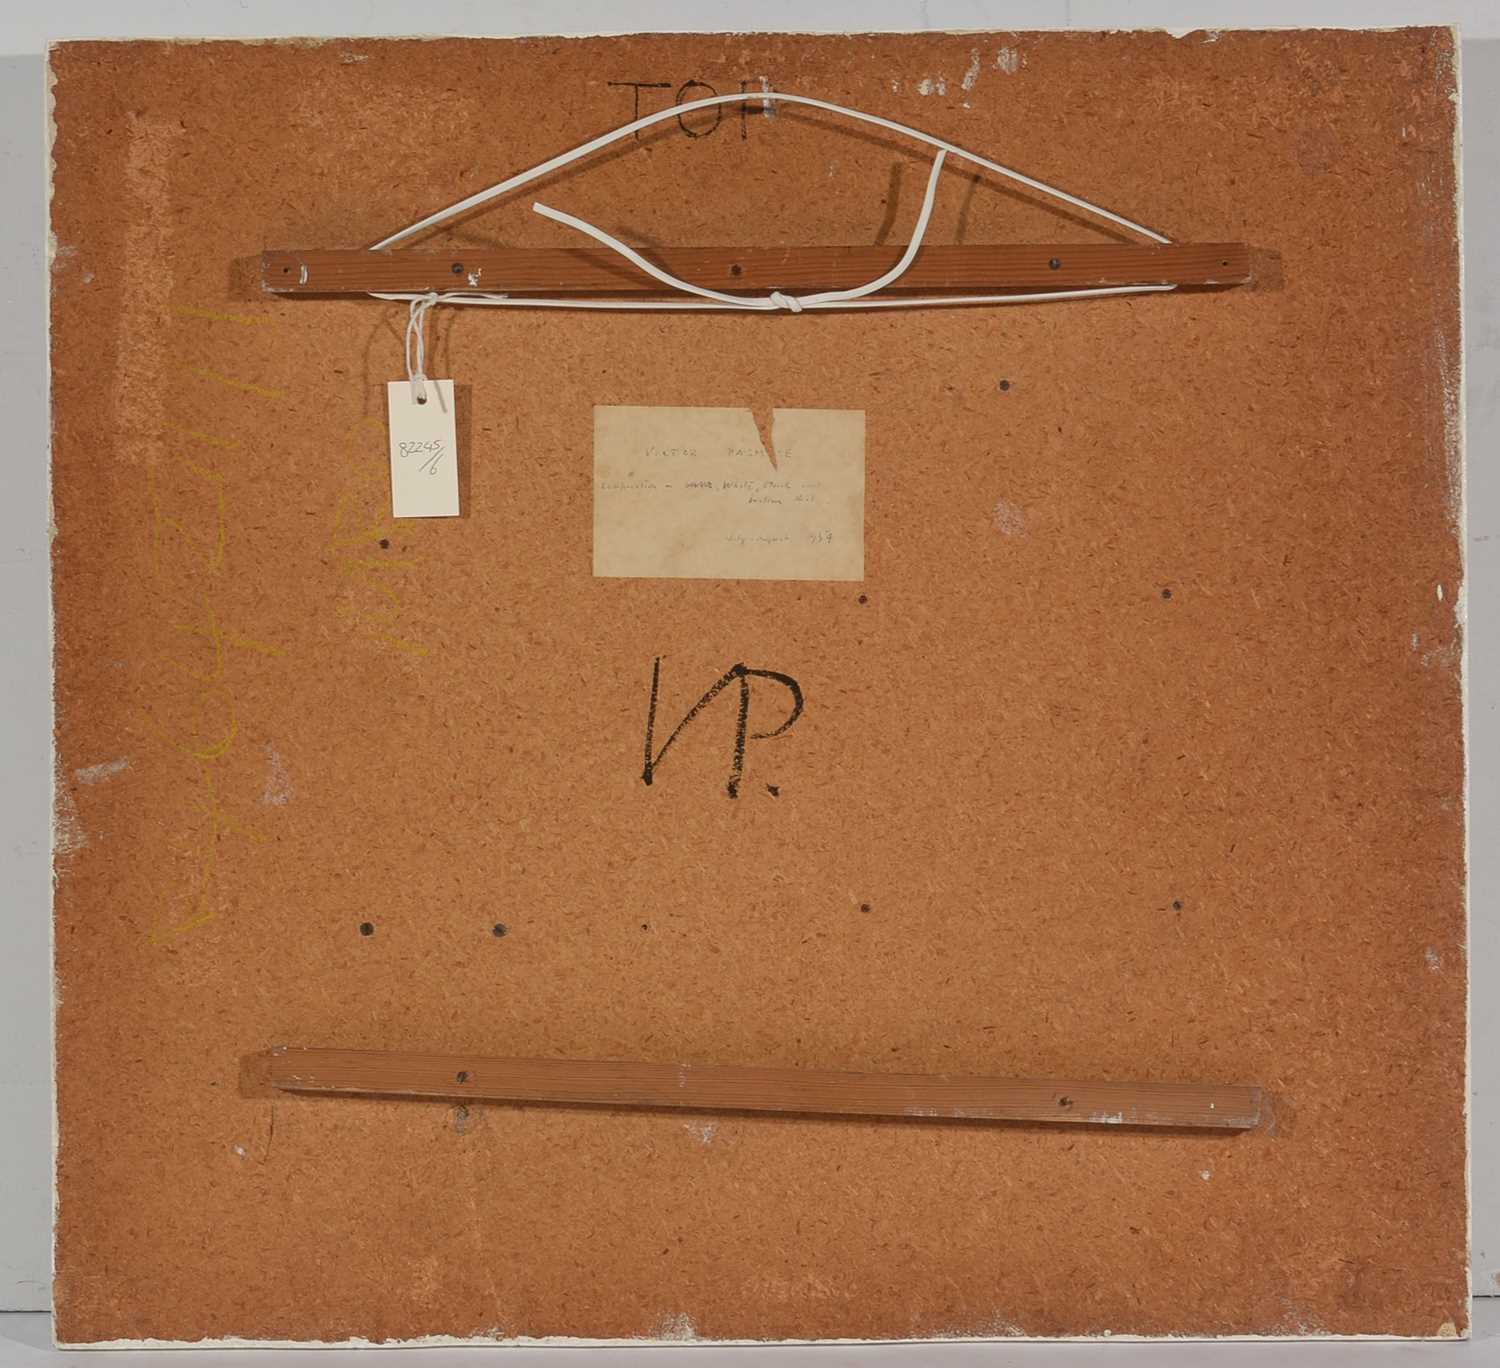 (Edwin John) Victor Pasmore - painted construction - Image 2 of 11